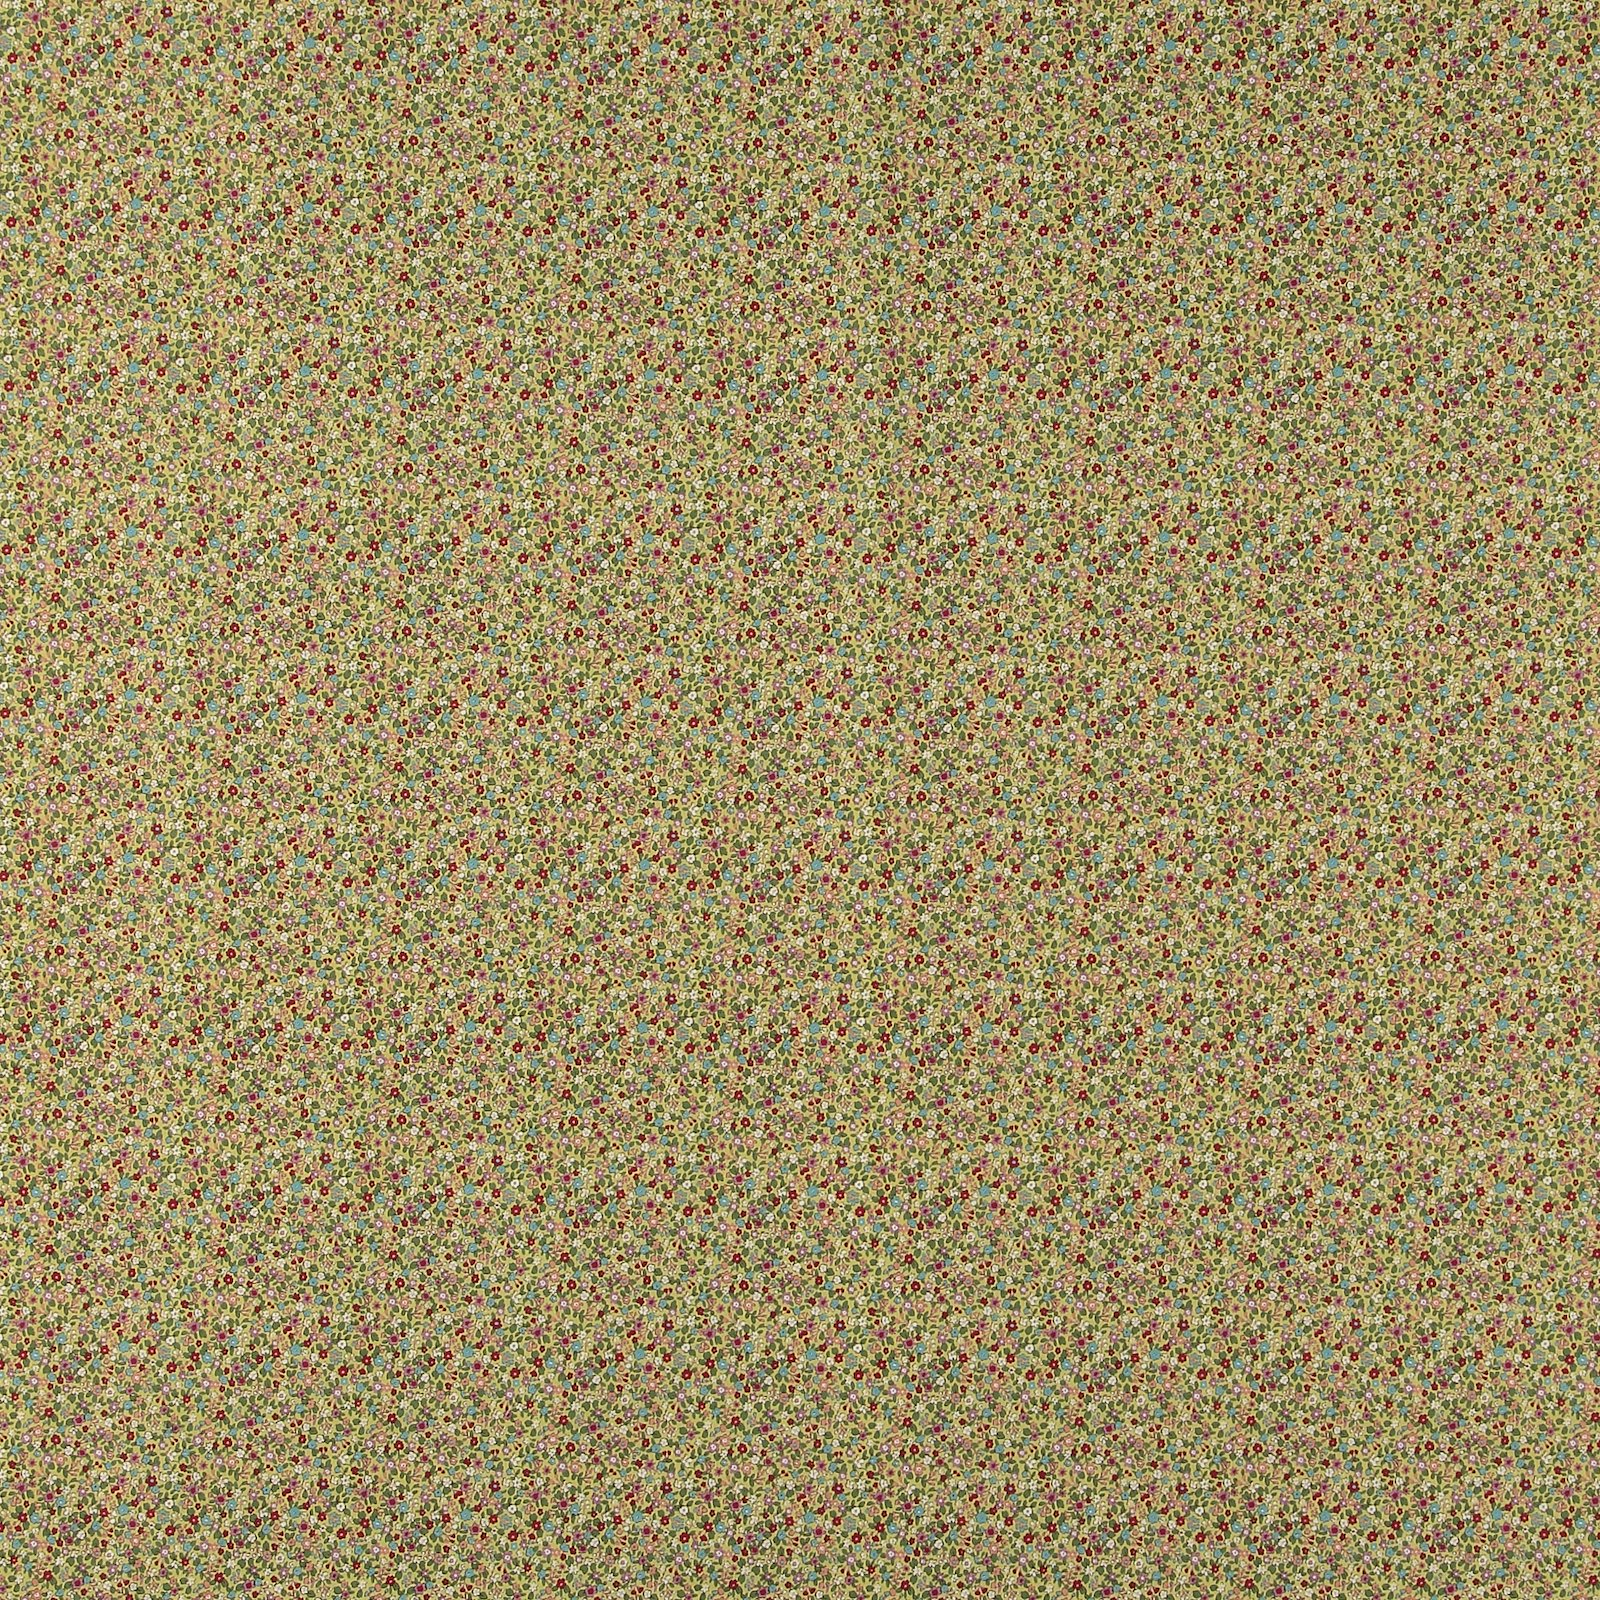 Cotton light yellow olive with flowers 852414_pack_sp